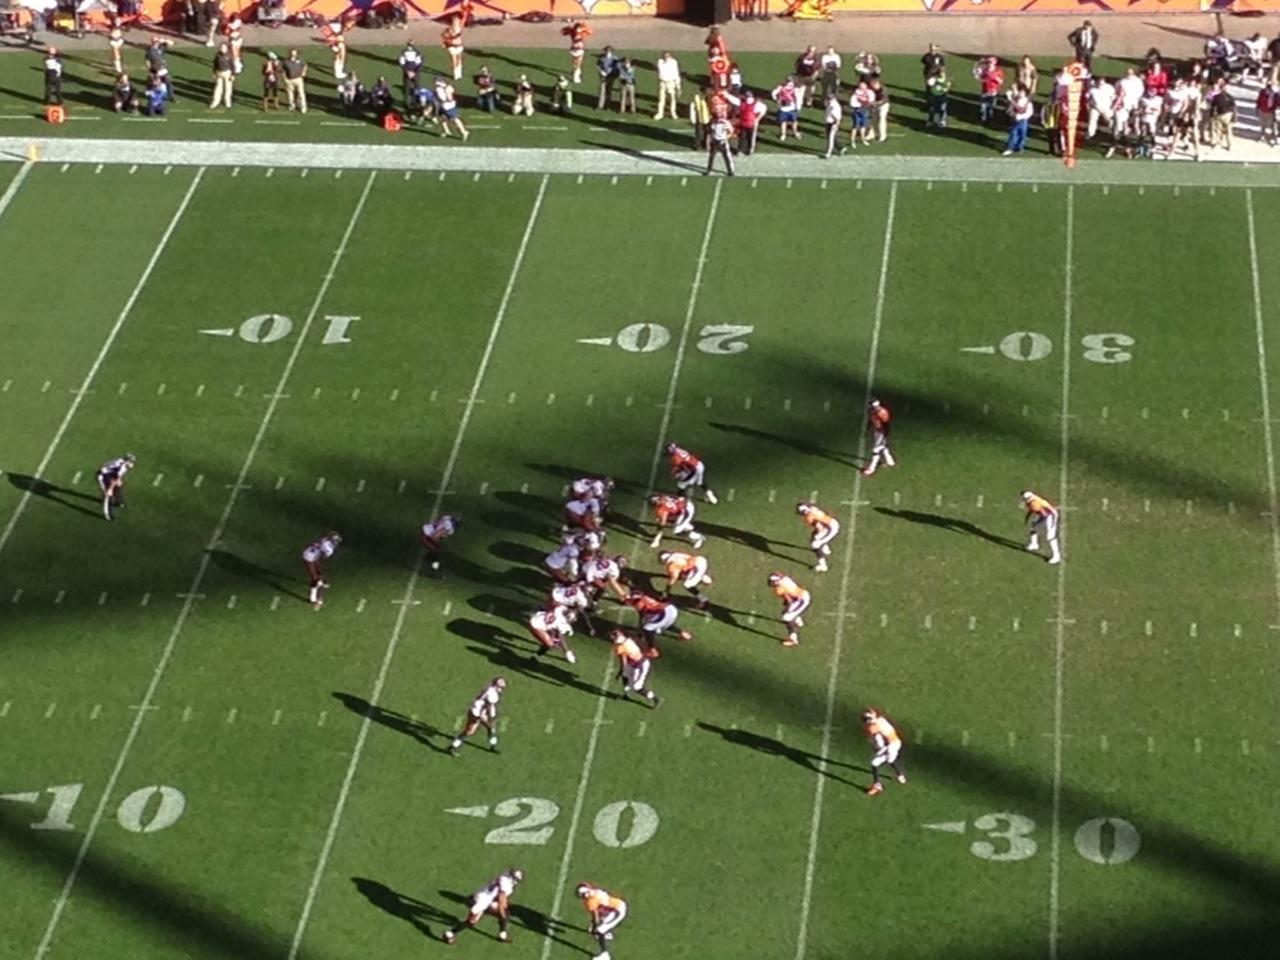 Sports Authority Field Section 509 - RateYourSeats.com